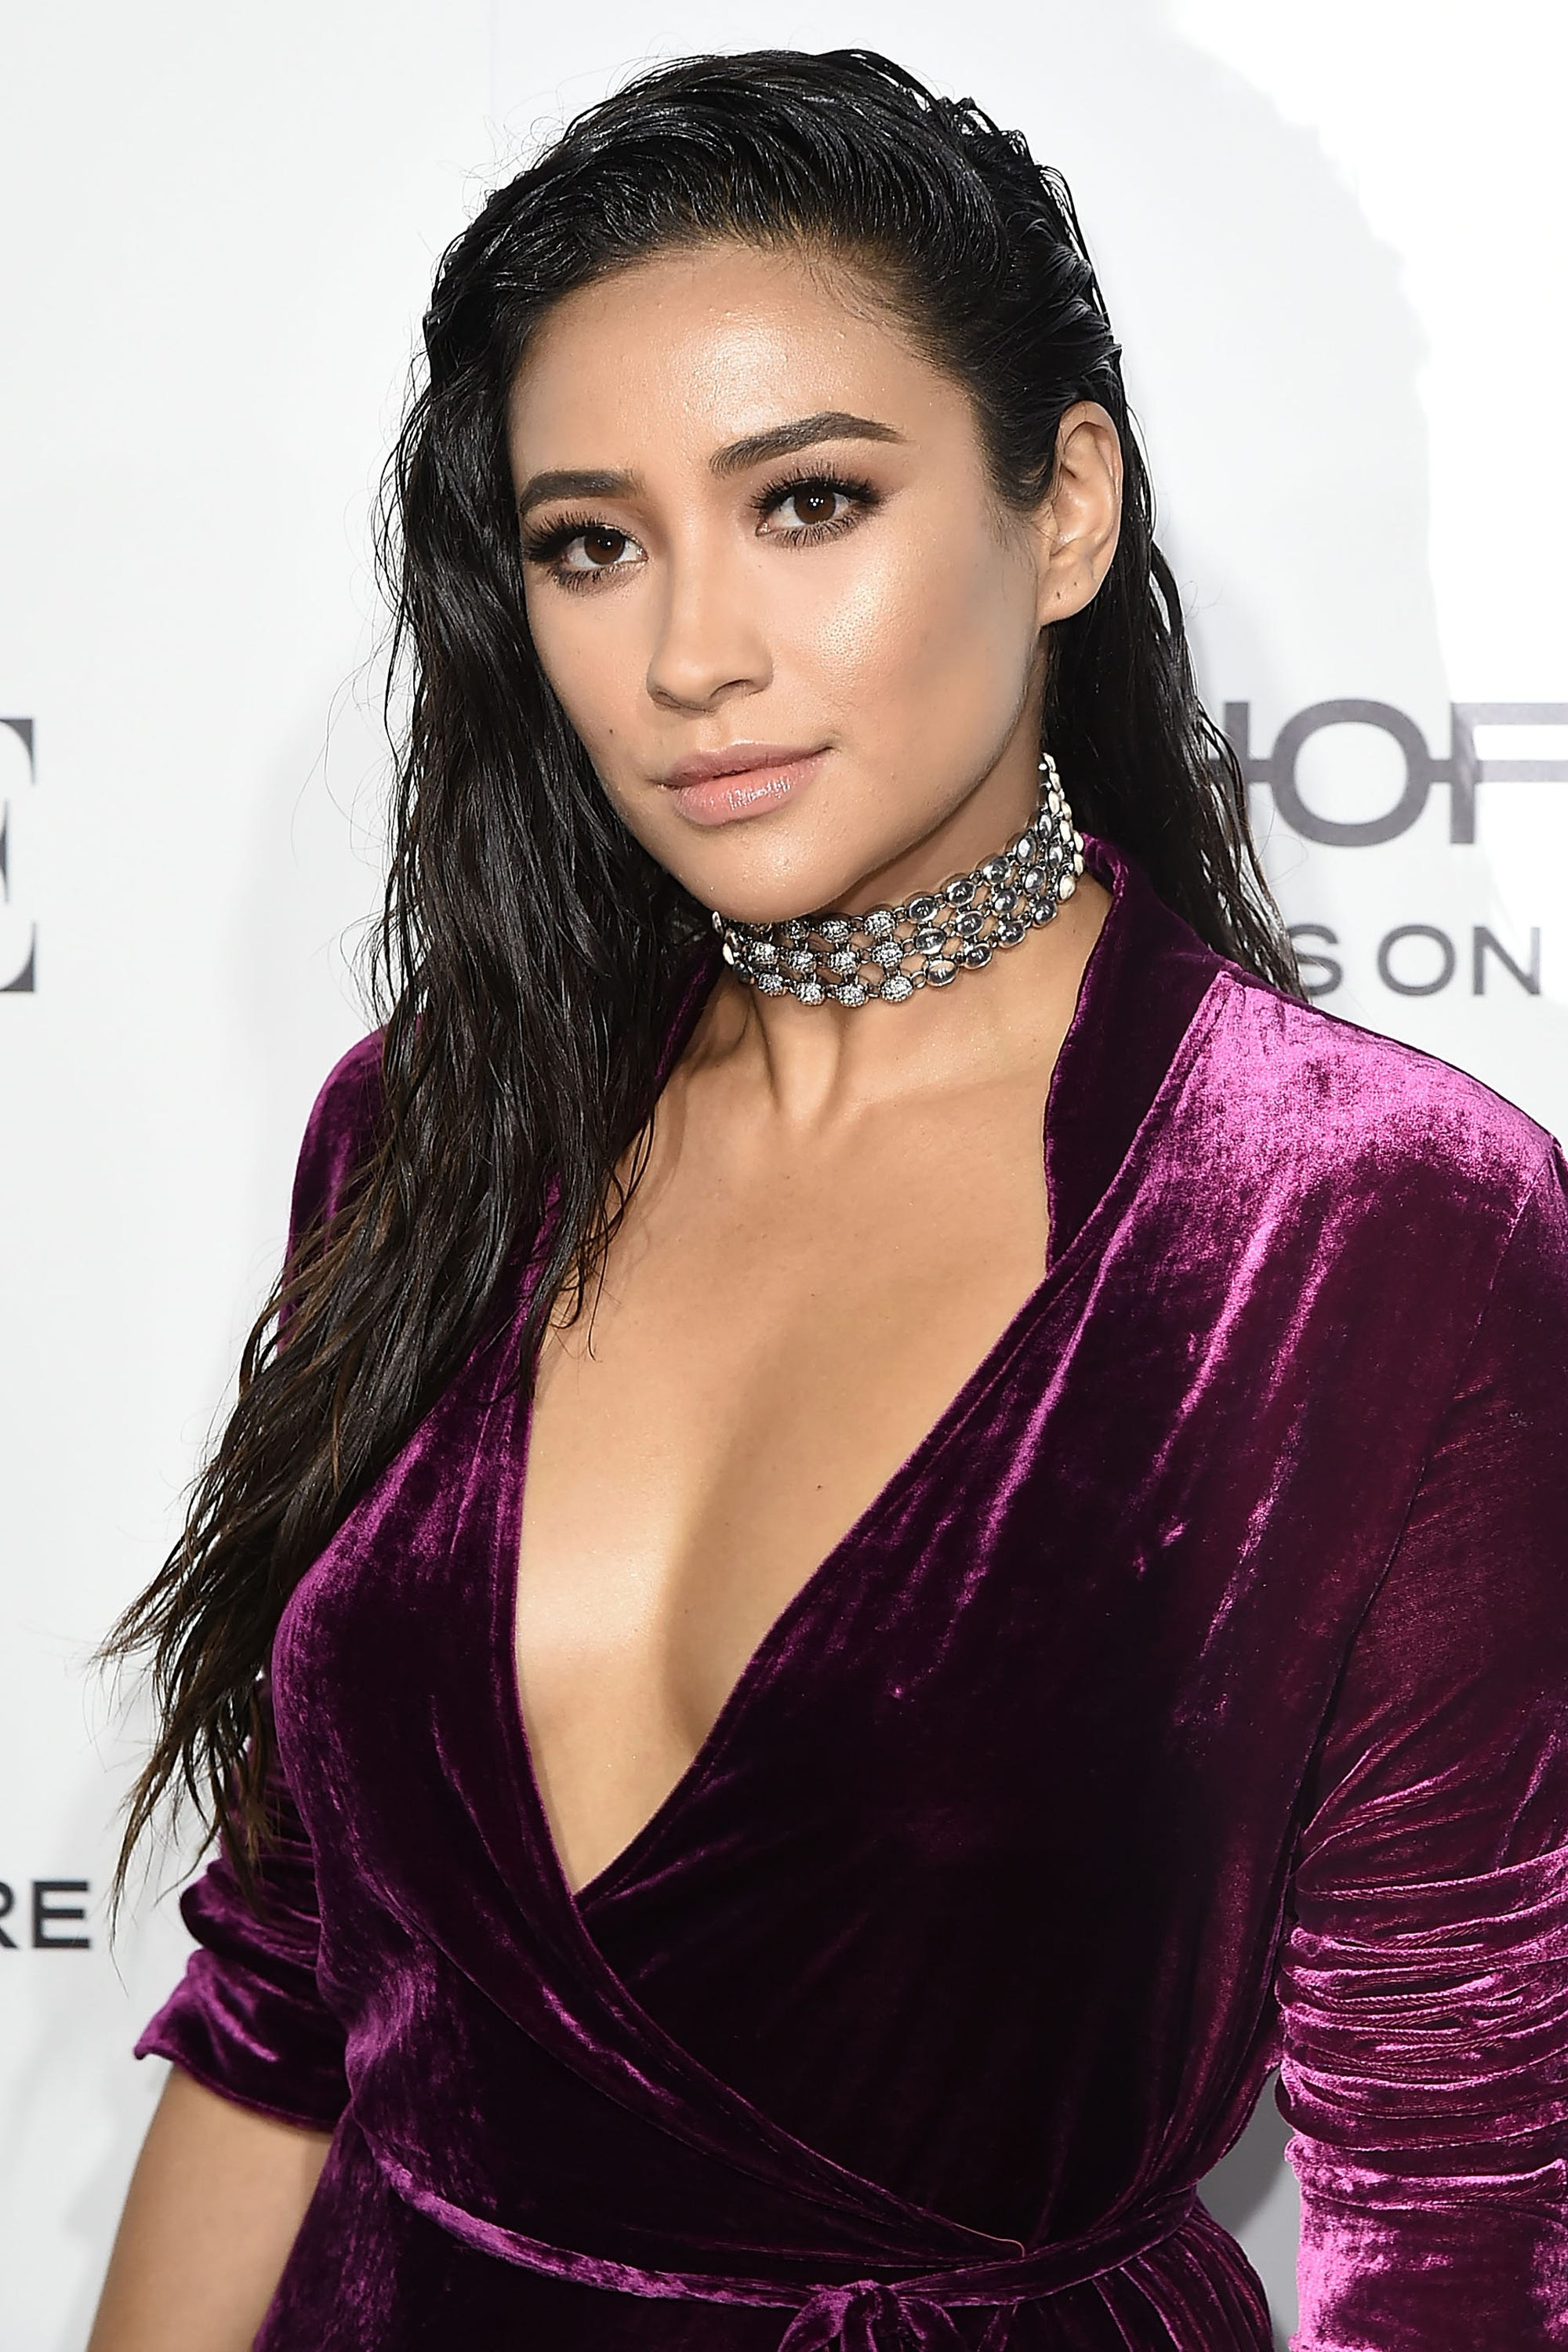 Watch The 14 Best Shay Mitchell Beauty Moments Ever video